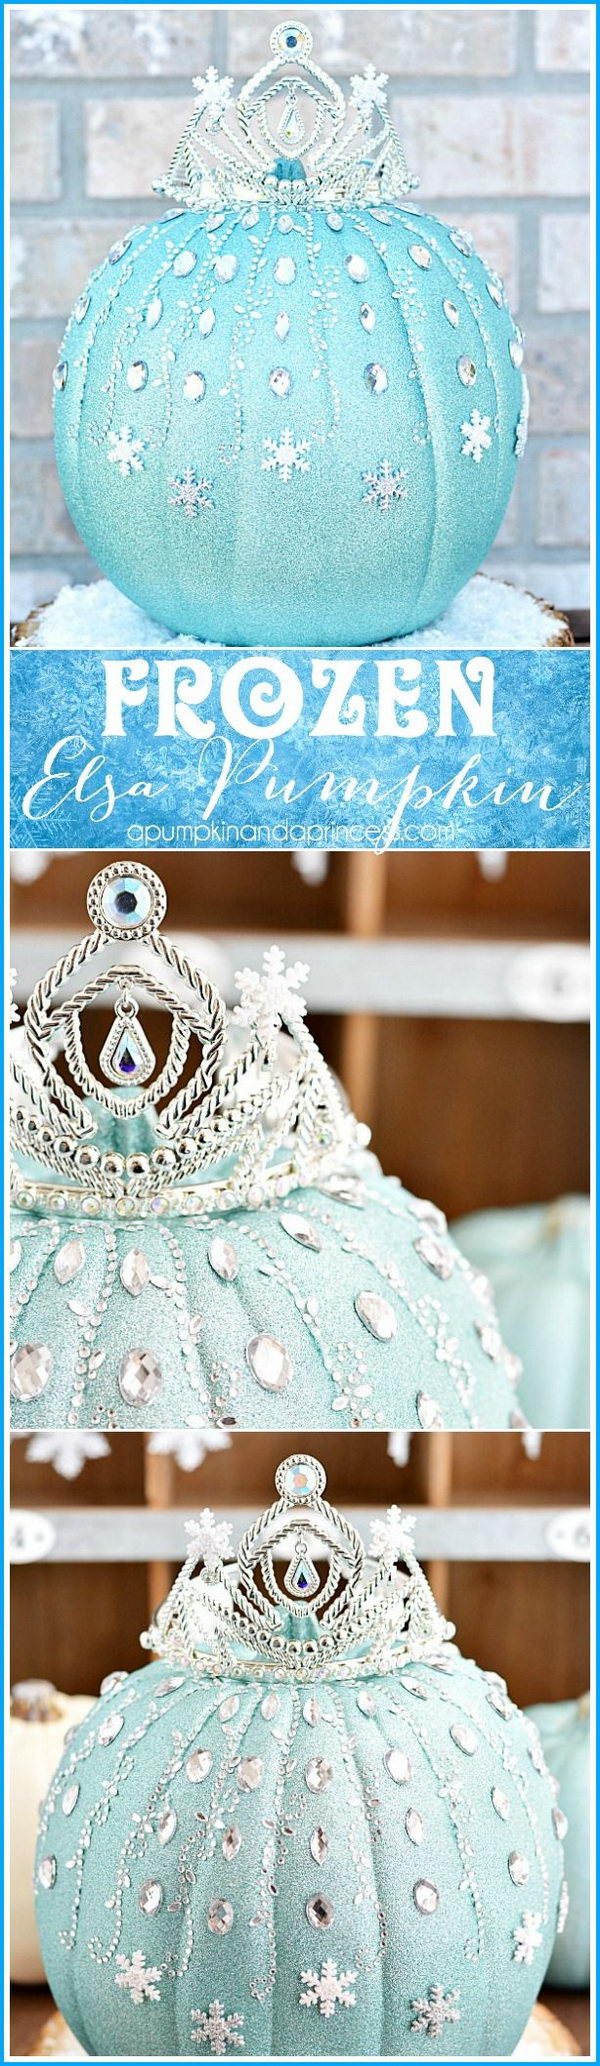 DIY No Carving Frozen Elsa Pumpkin. Oh, my word! This frozen Elsa pumpkin is seriously adorable! And it's much more easy to decorate than you may think.